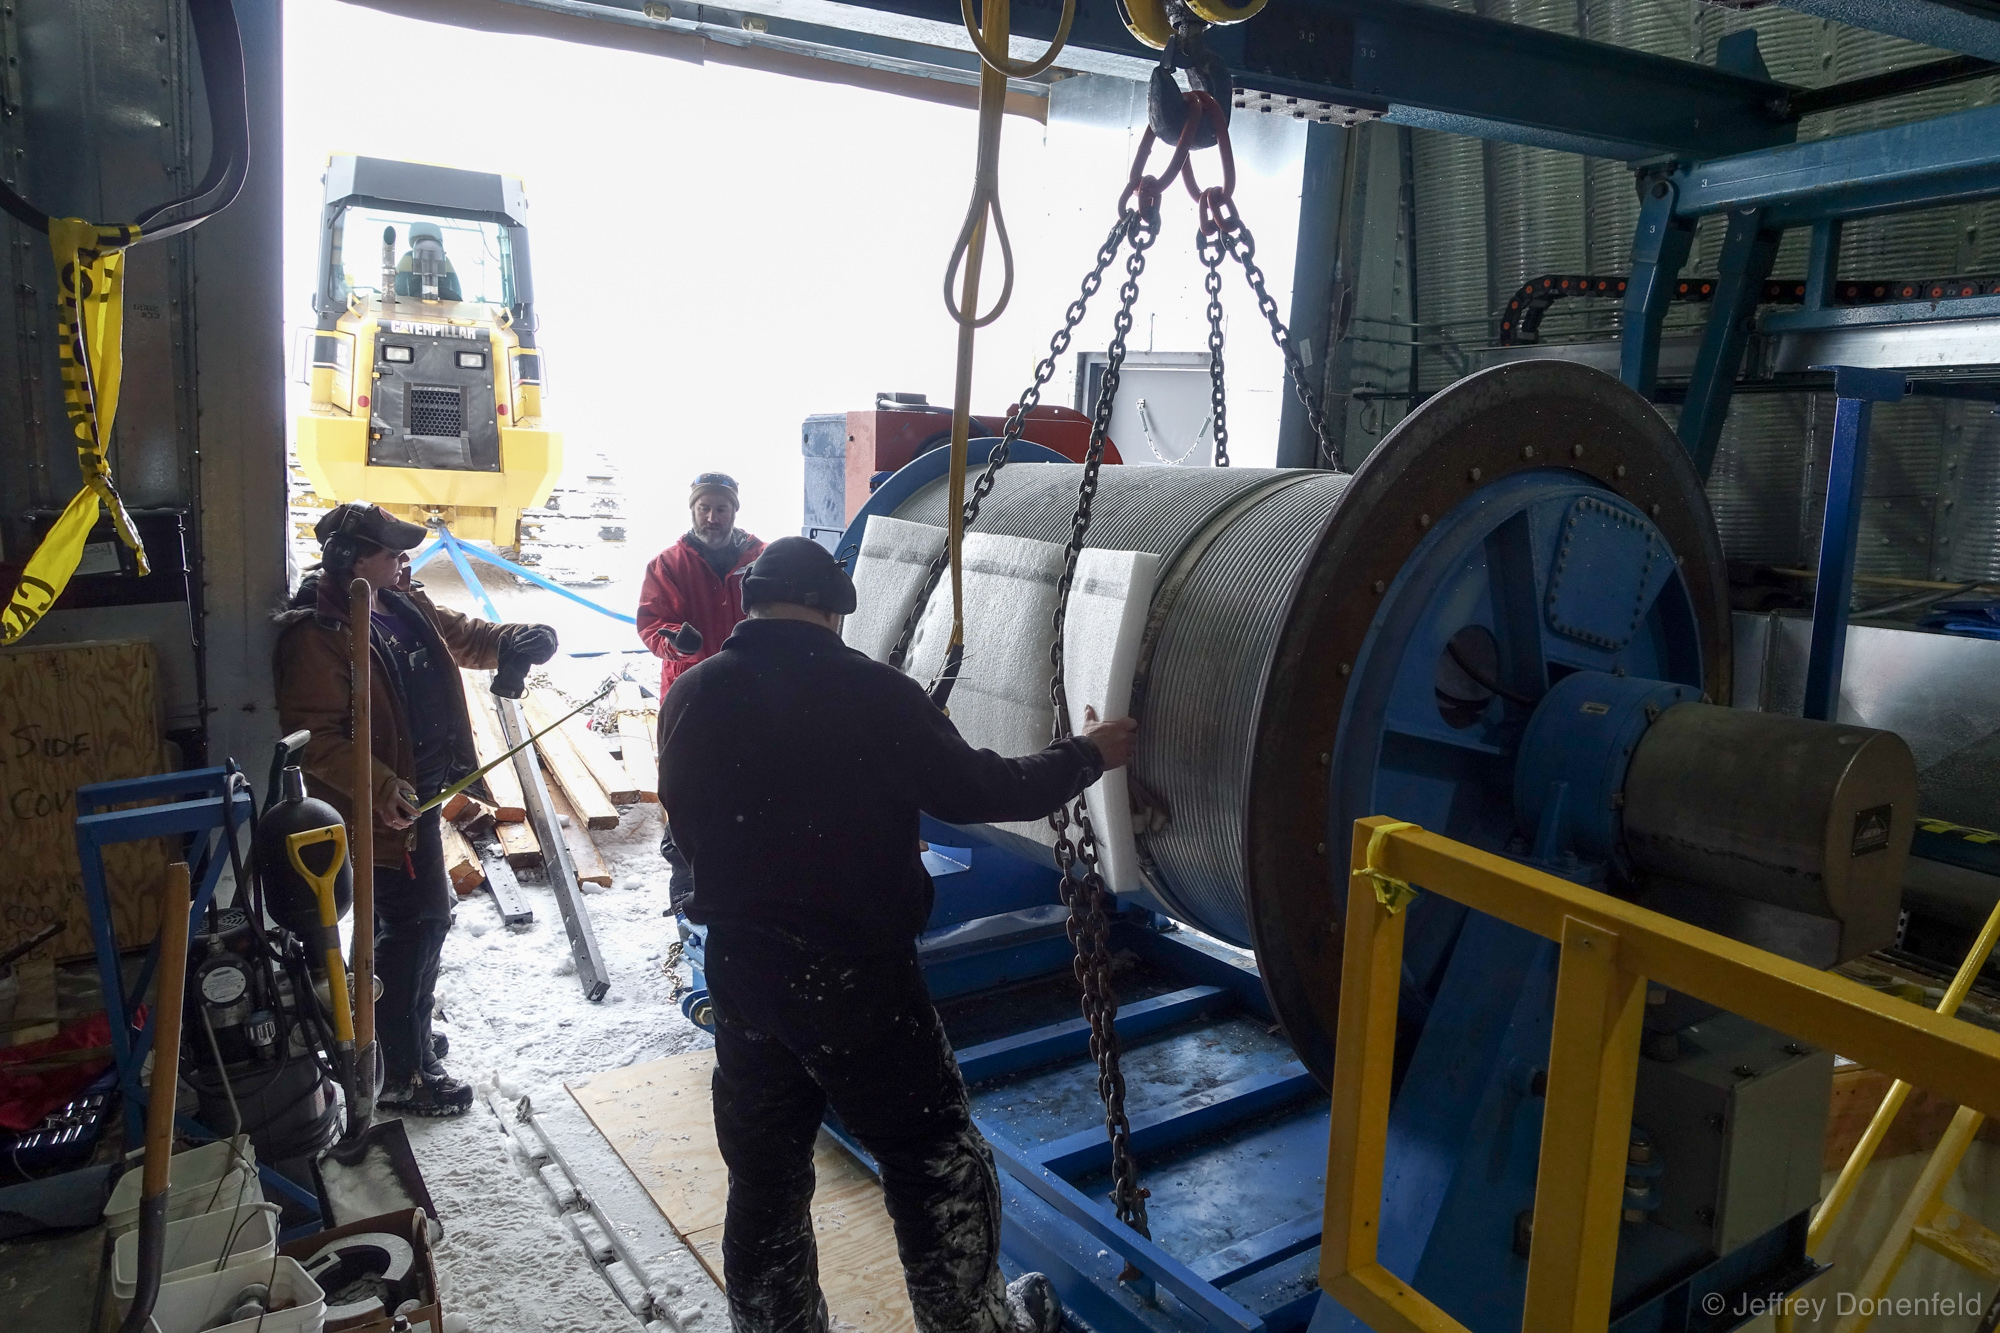 Finally, the large winch reel is hoisted out of the pit - next step is to drag it up the ramp to the surface, where it gets staged for air transport.